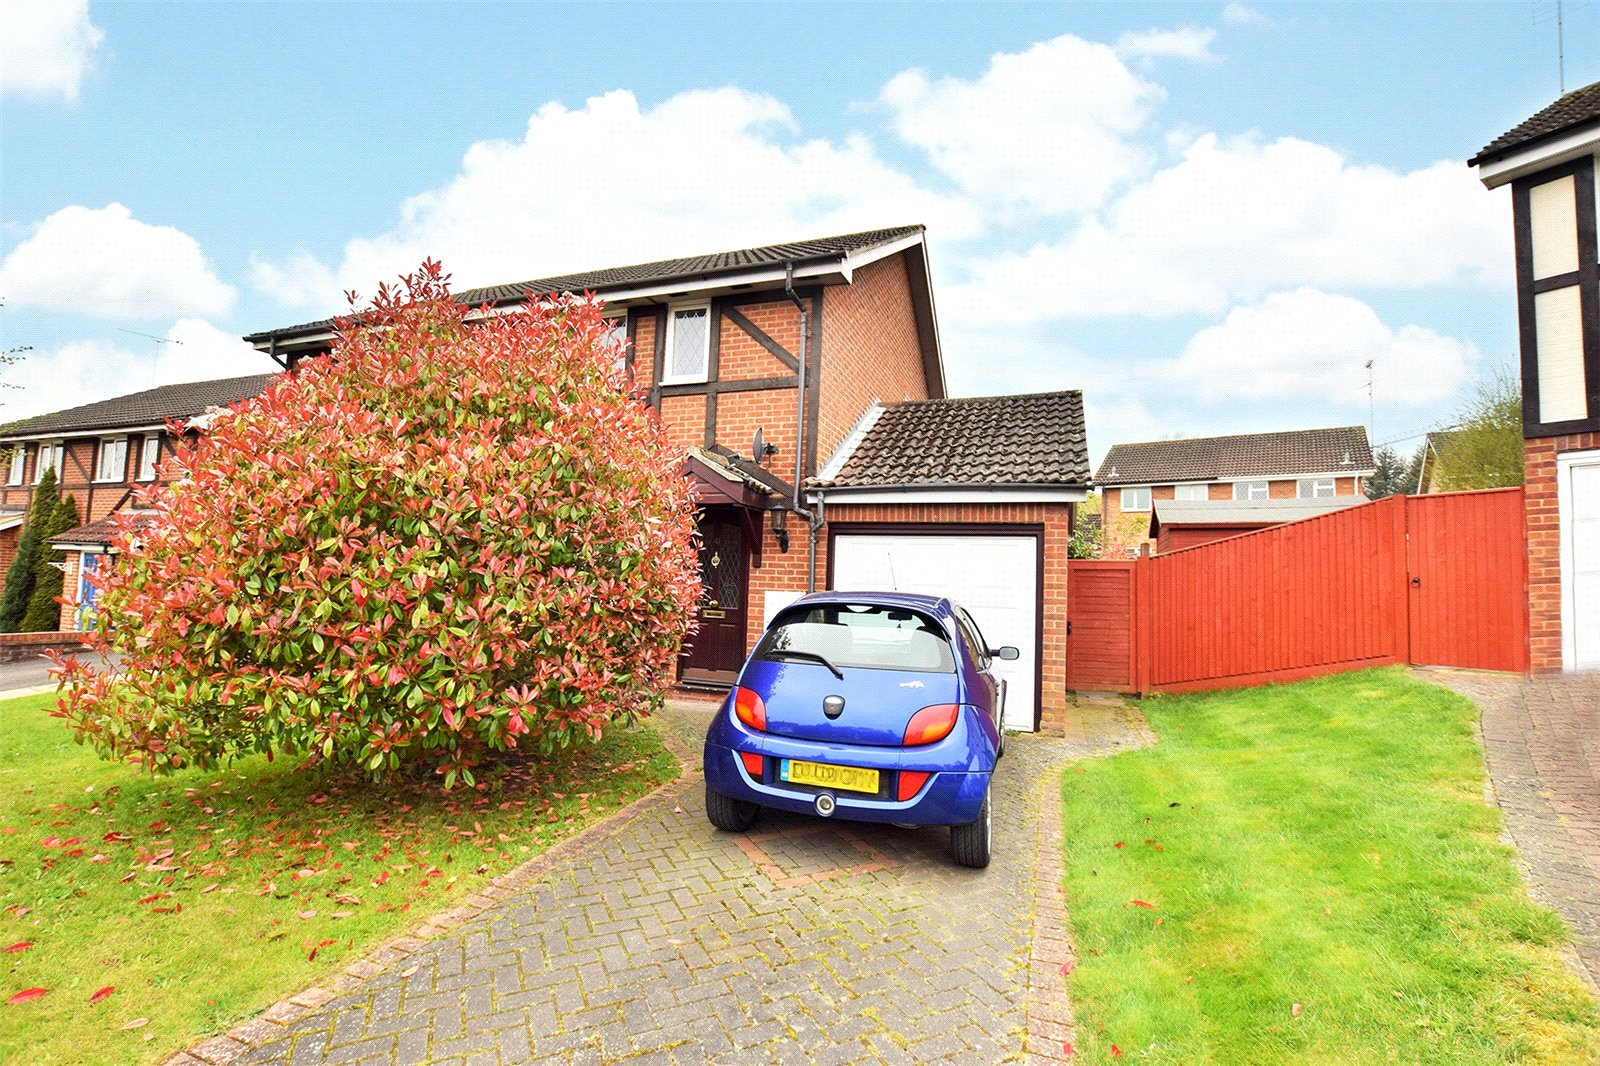 2 Bedrooms End Of Terrace House for sale in Farley Copse, Amen Corner, Binfield, Berkshire, RG42